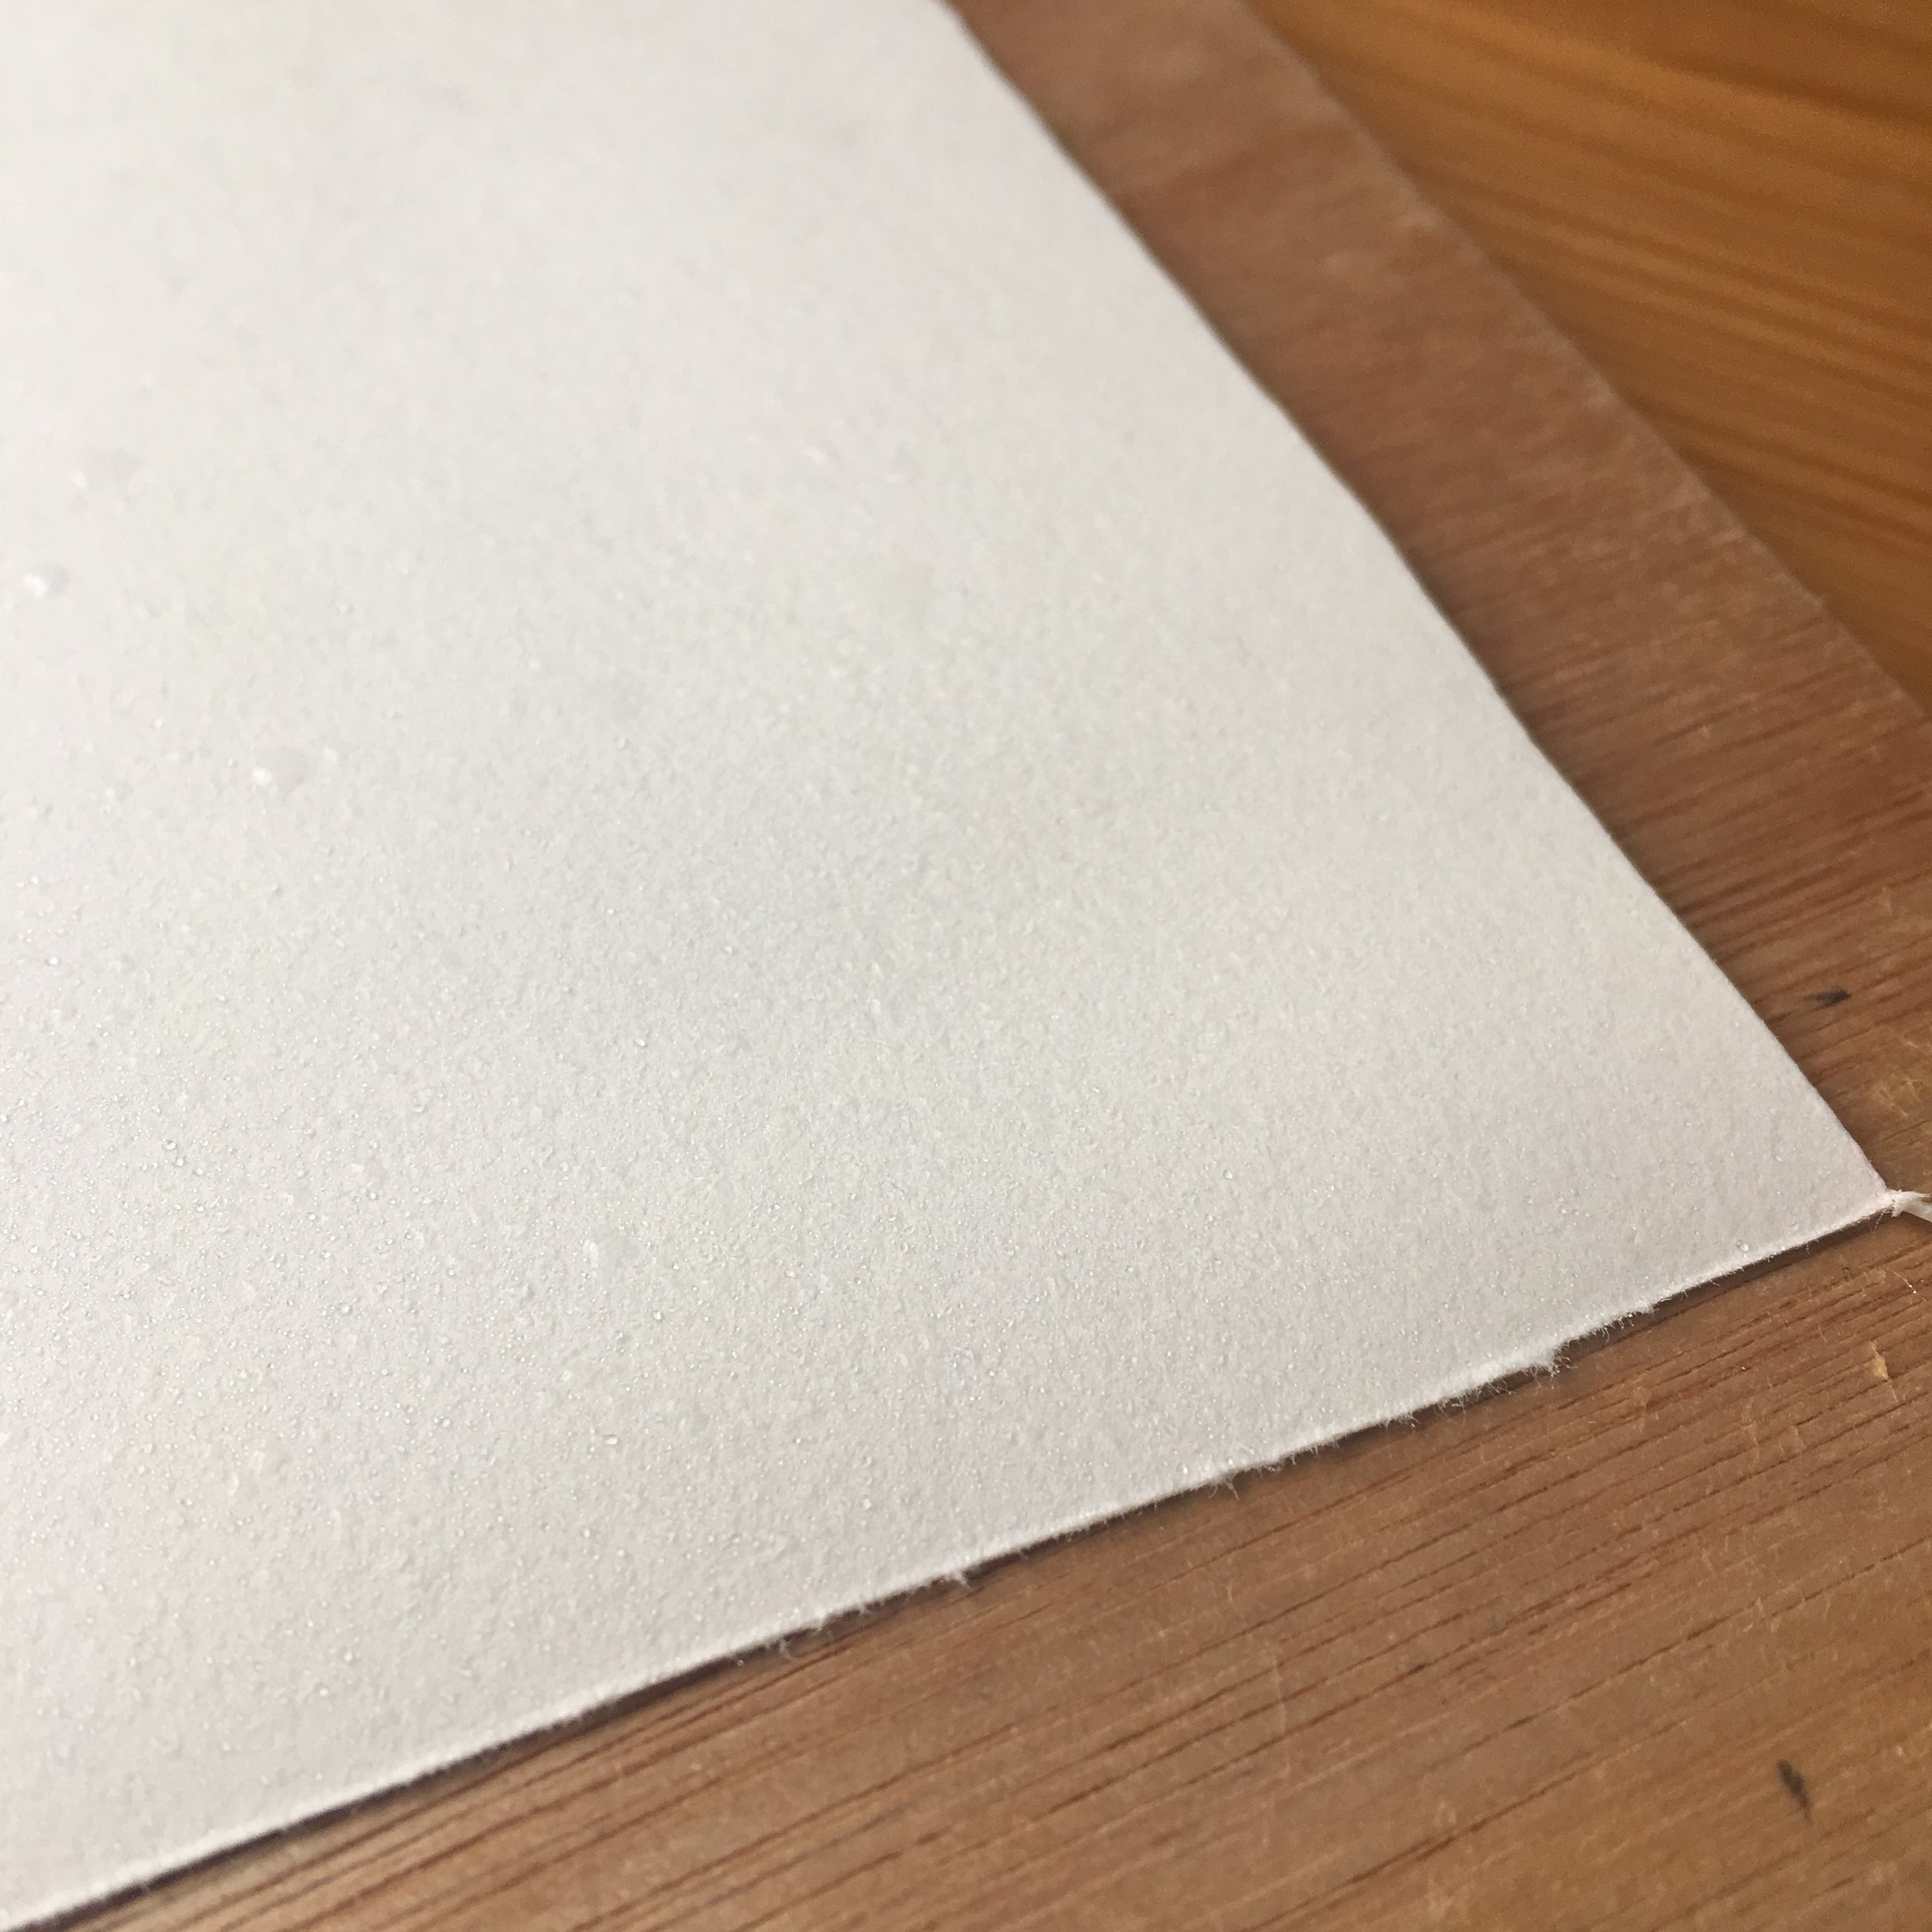 Hopefully you can see here the amount of water I apply to the paper. No large puddles or soaks in the bath are necessary - in doing so, you can disrupt the sizing (what holds the fibres together) in the paper.